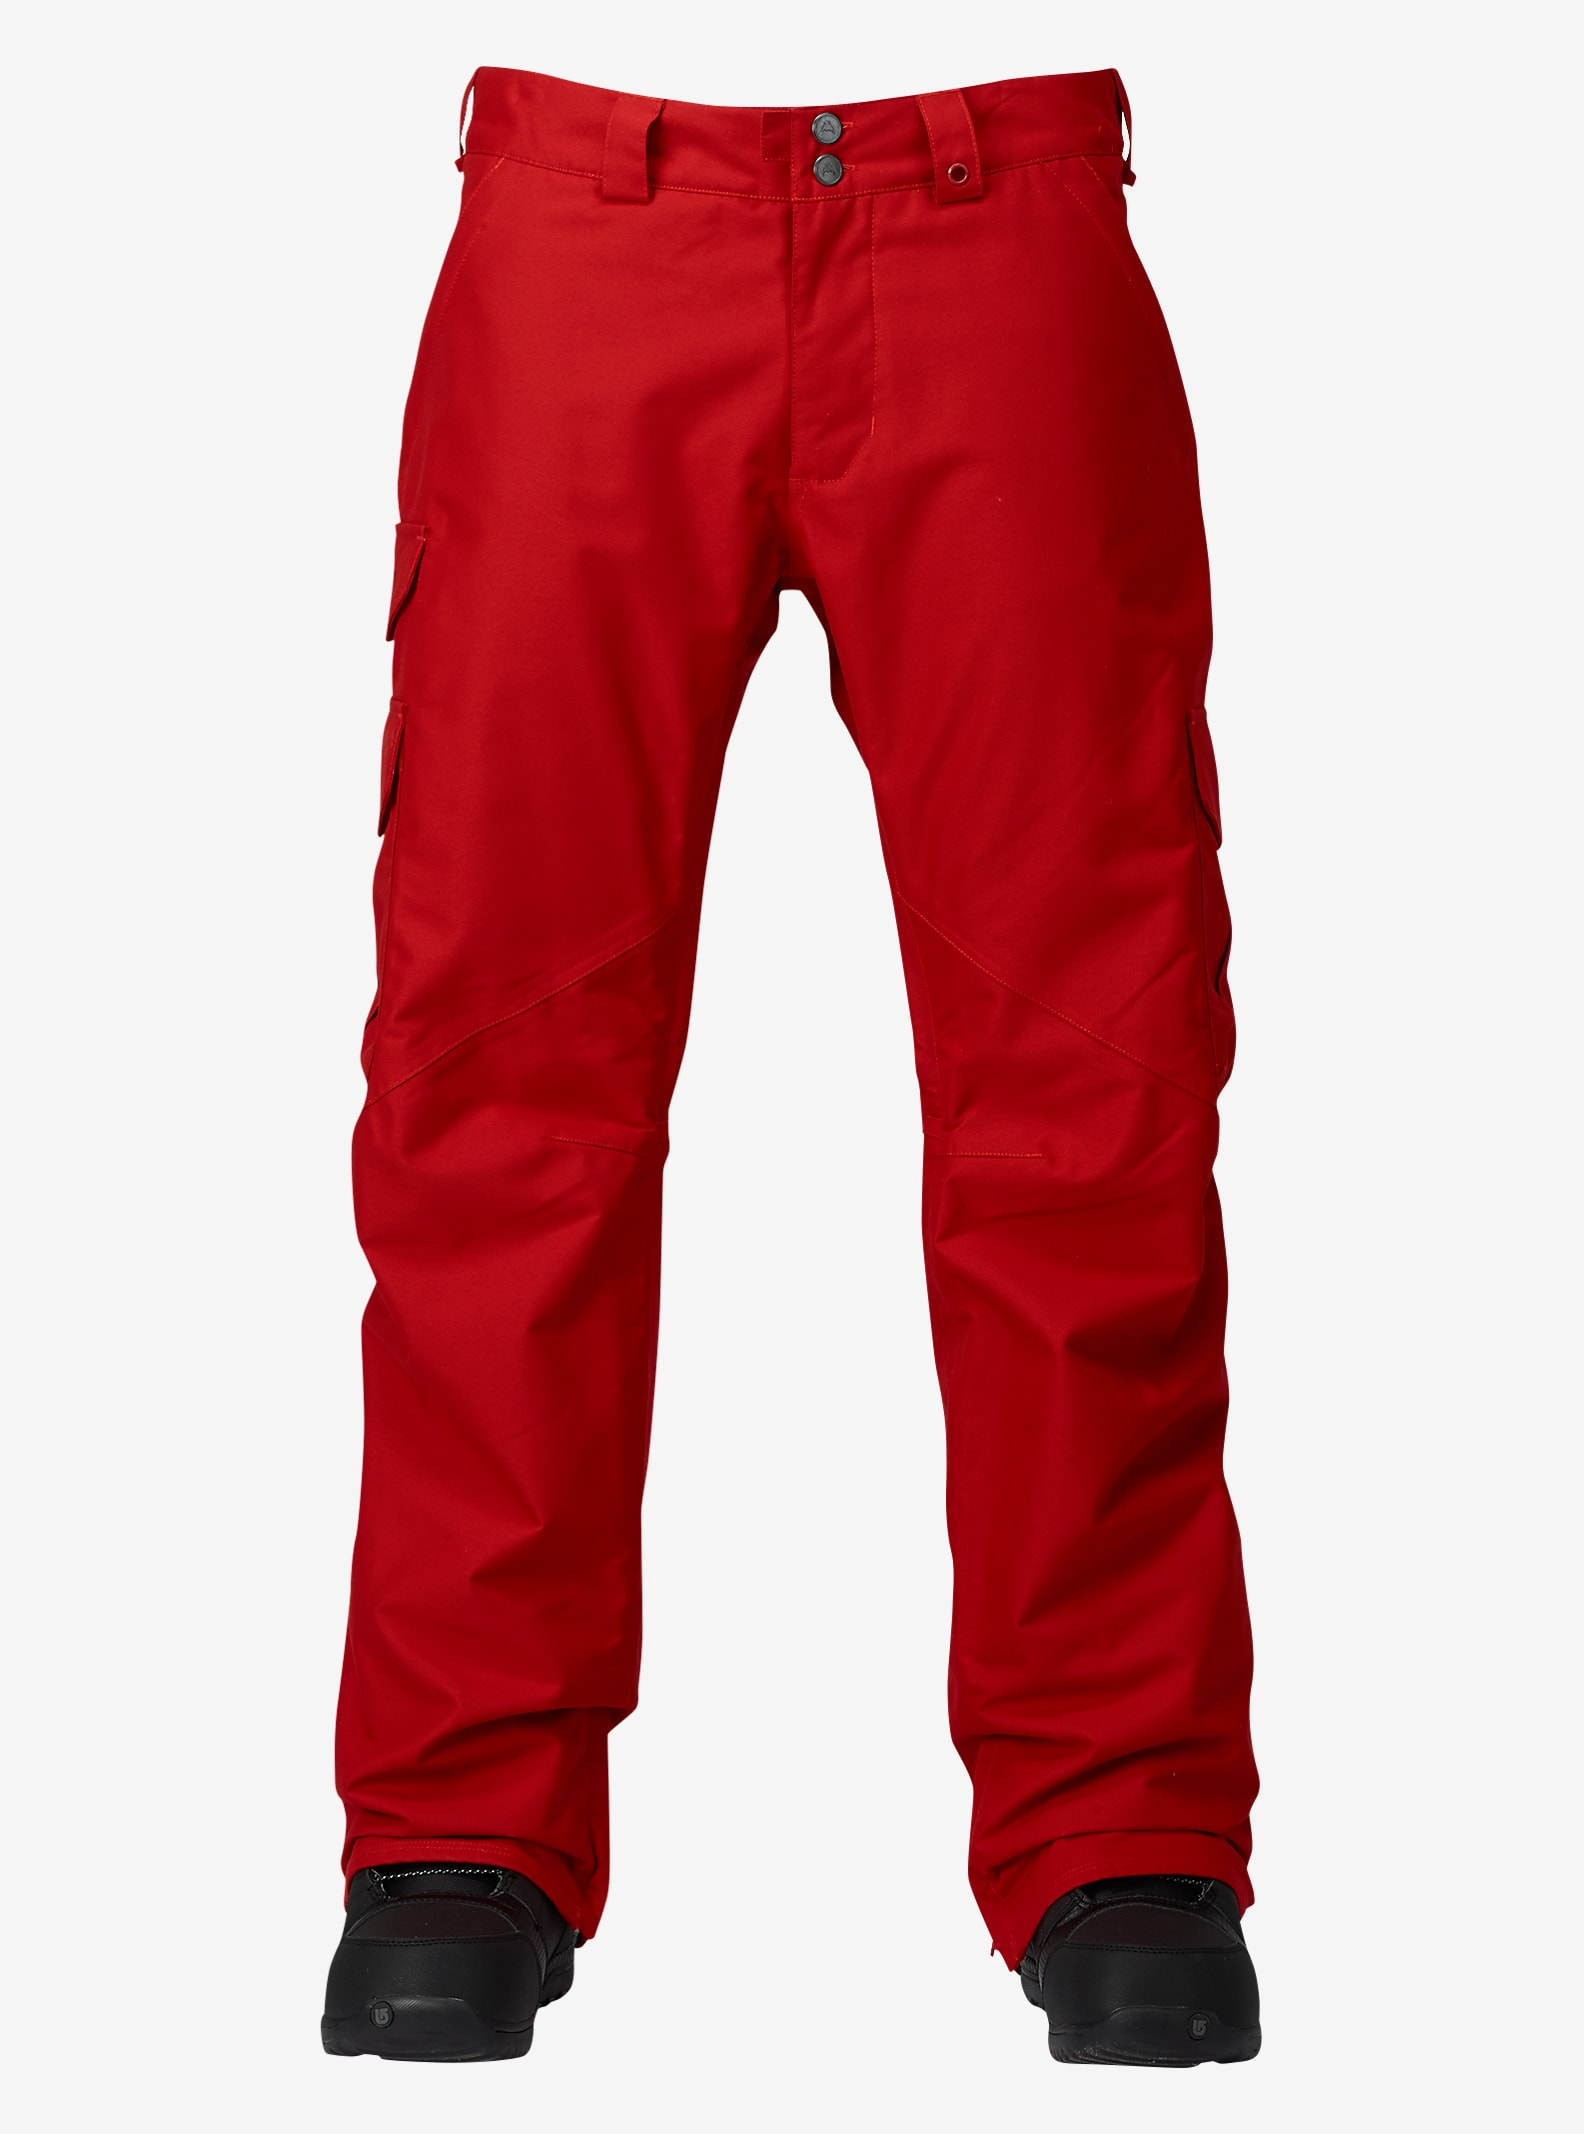 Burton Cargo Pant - Regular Fit shown in Process Red